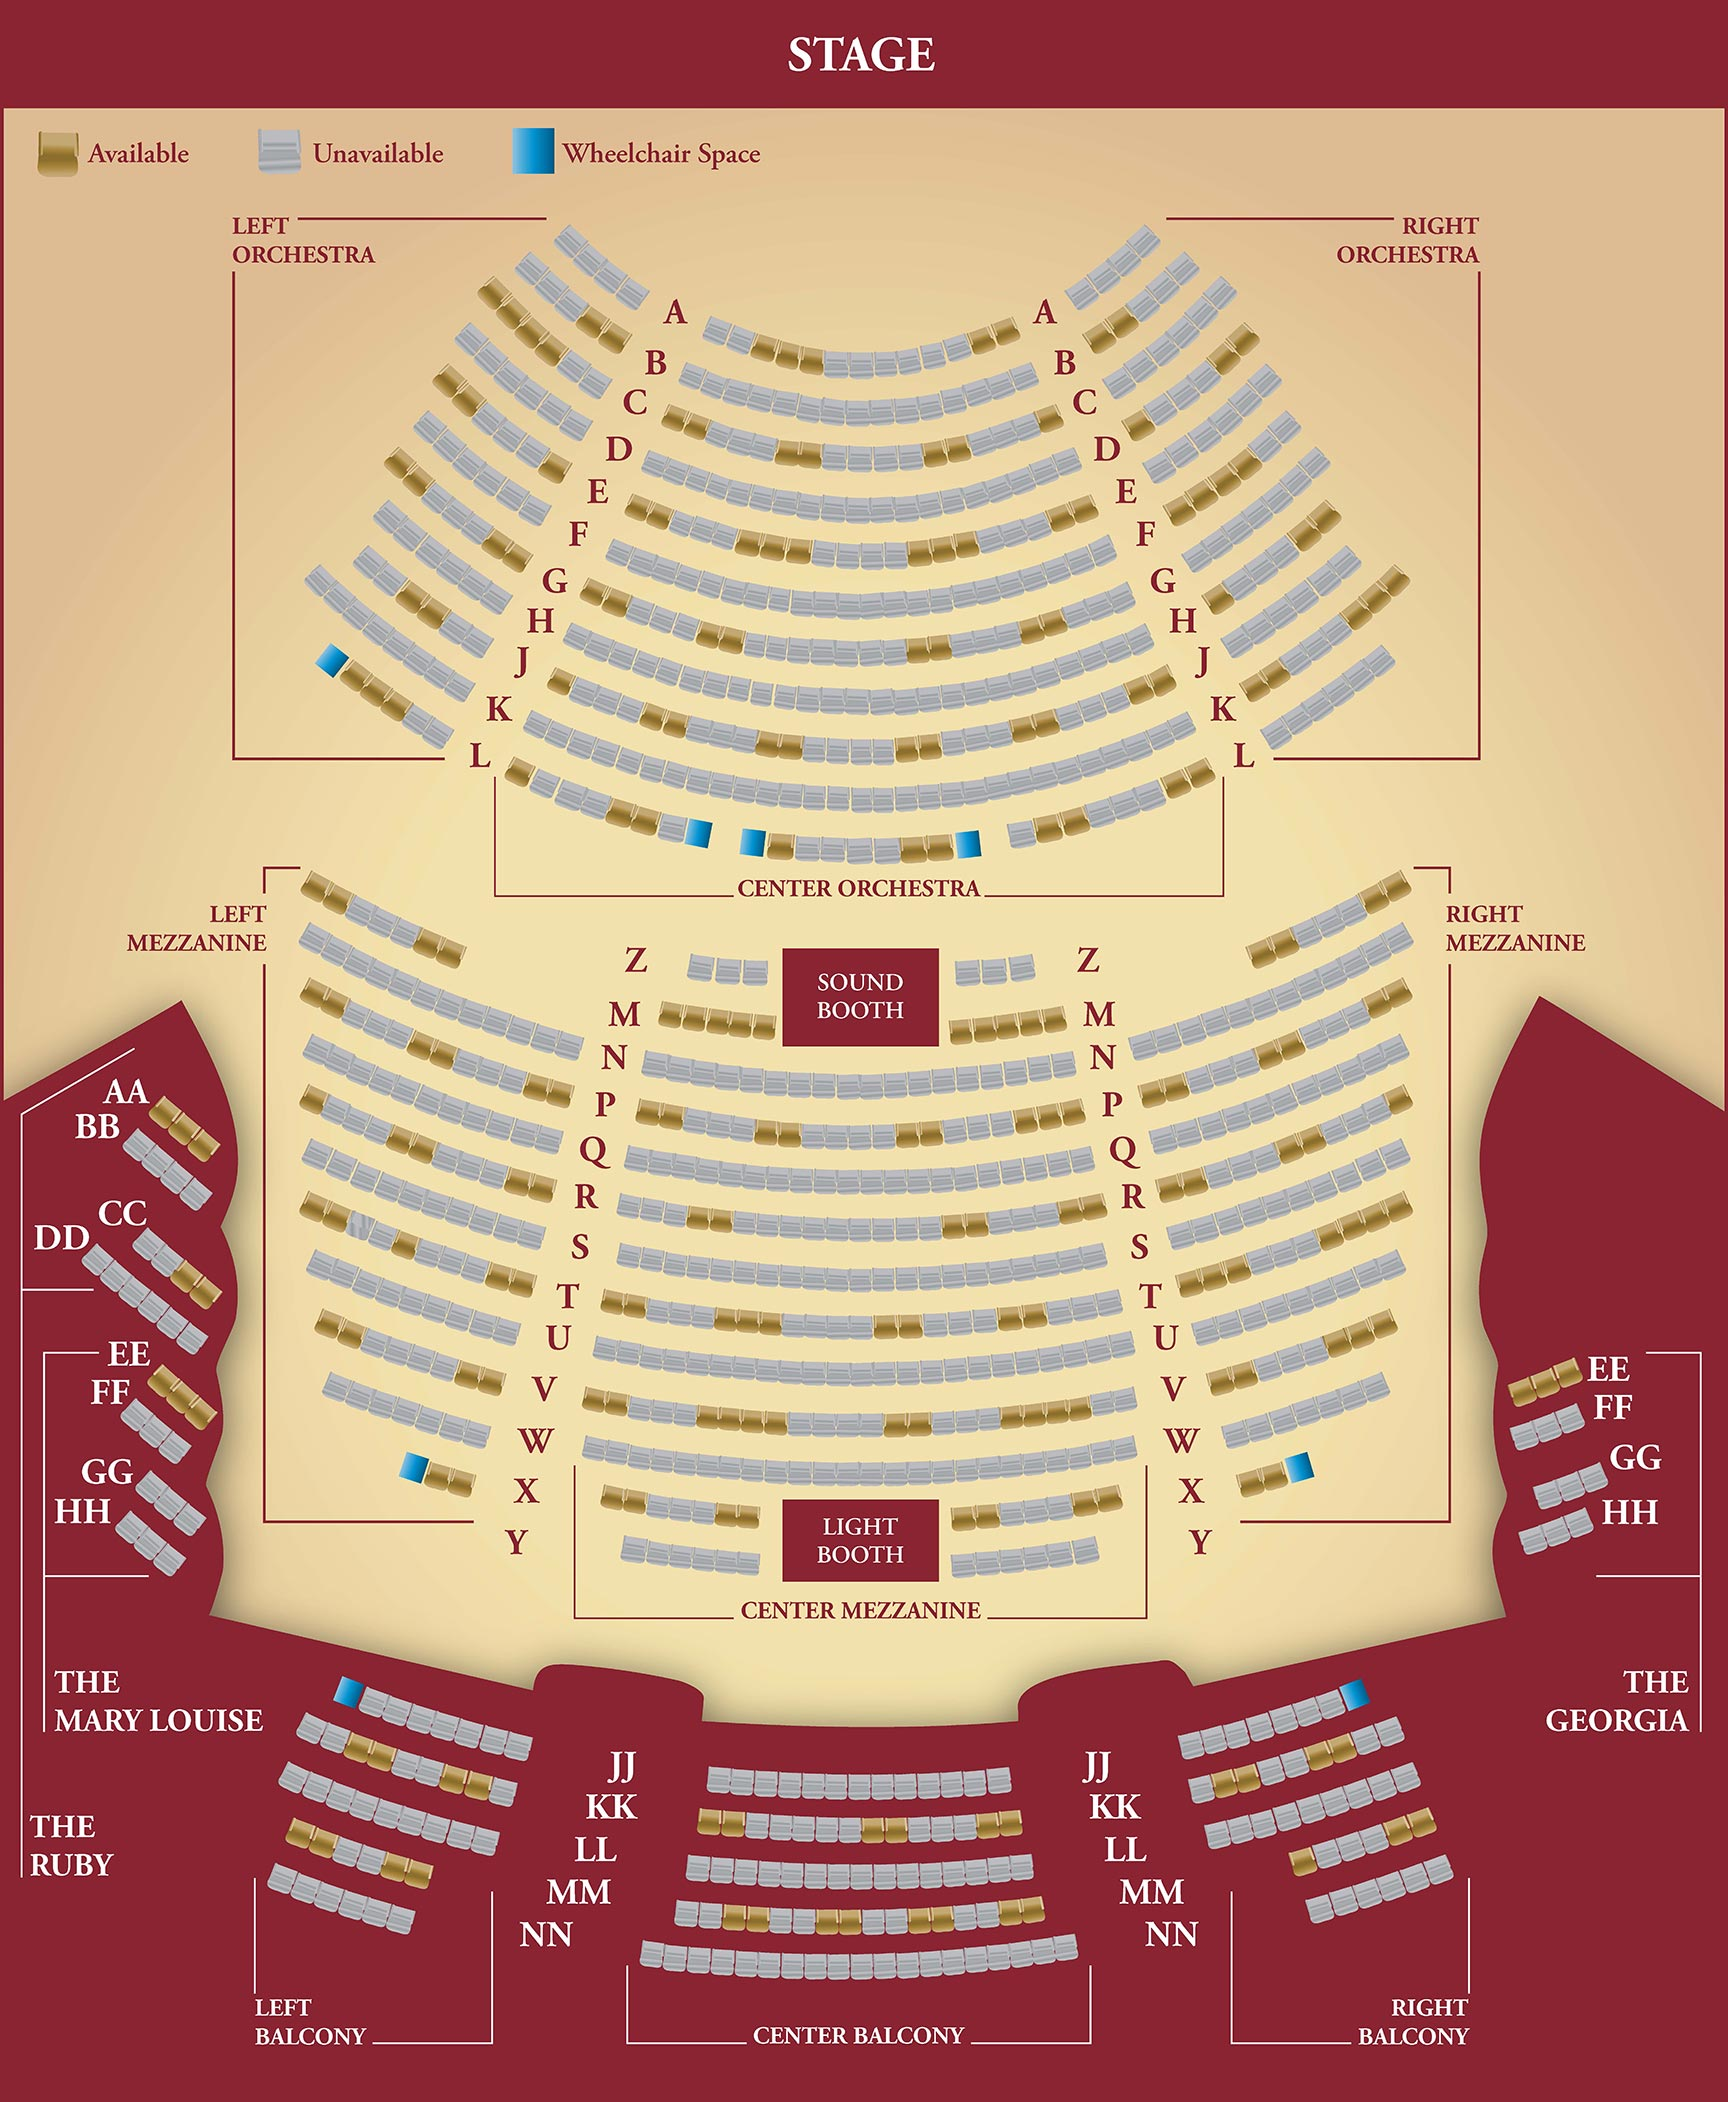 Reopening Seating Chart